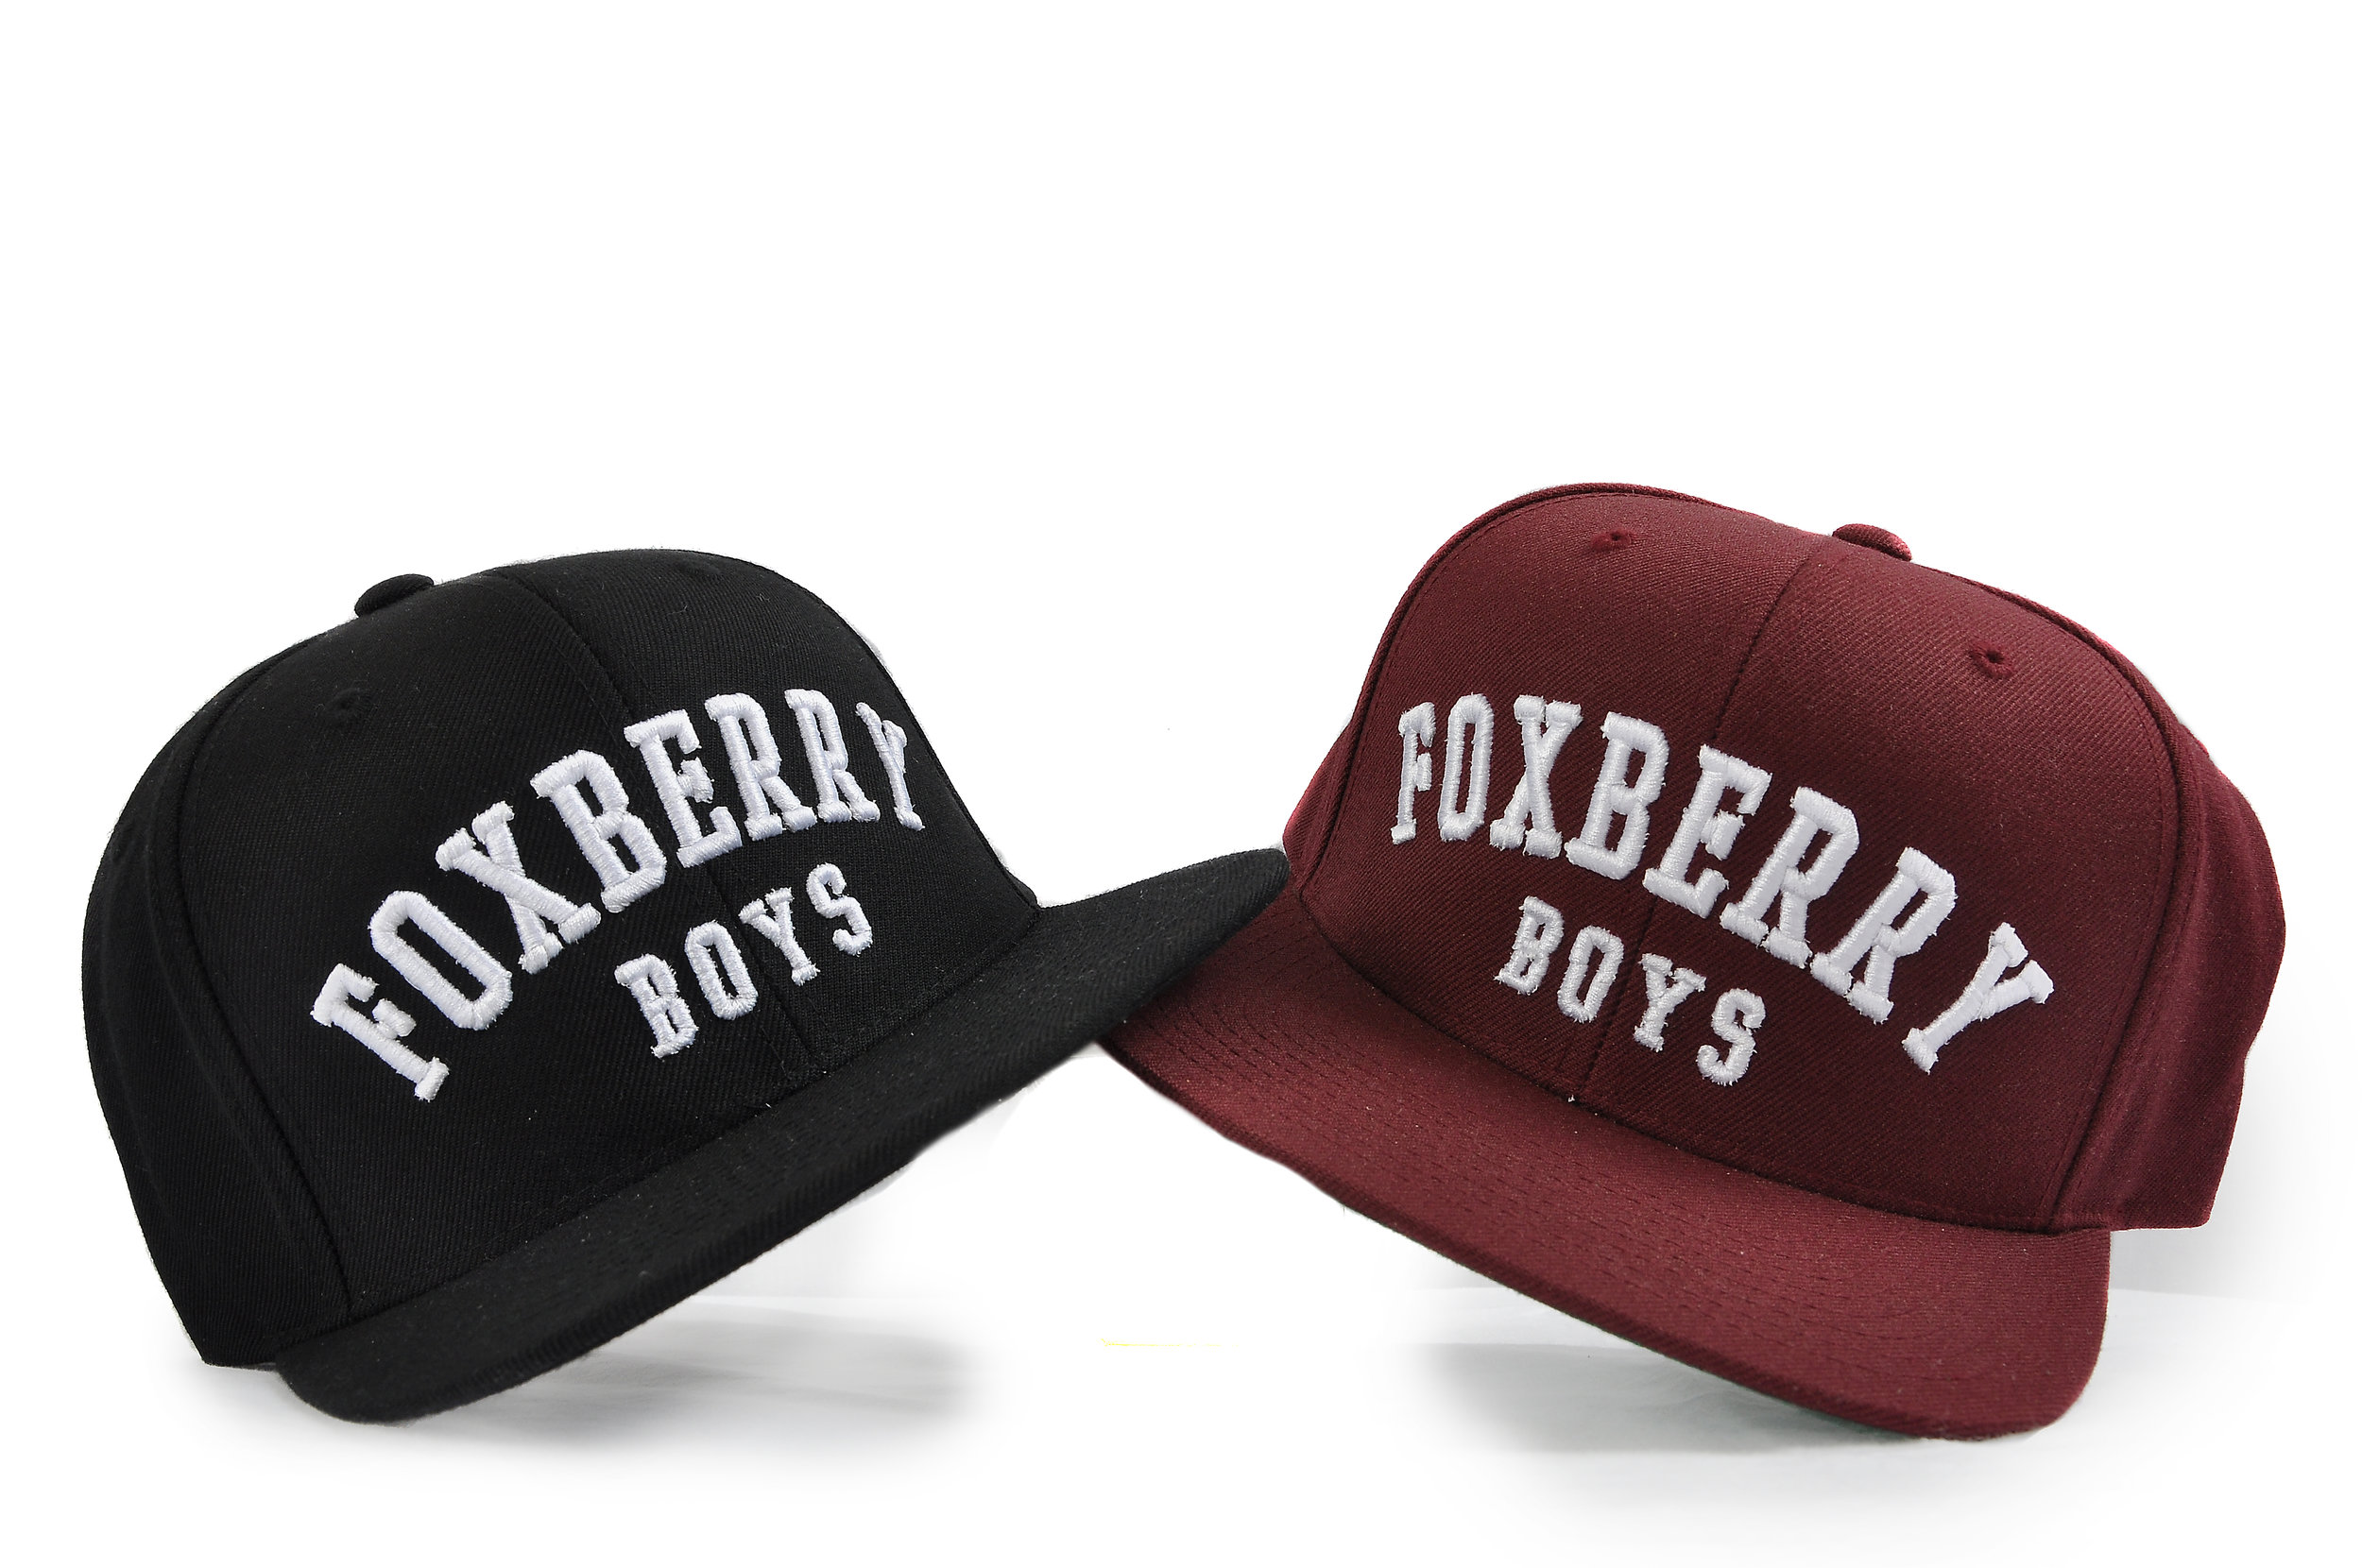 Foxberry Boys New Classic Signature Snapback in stock now